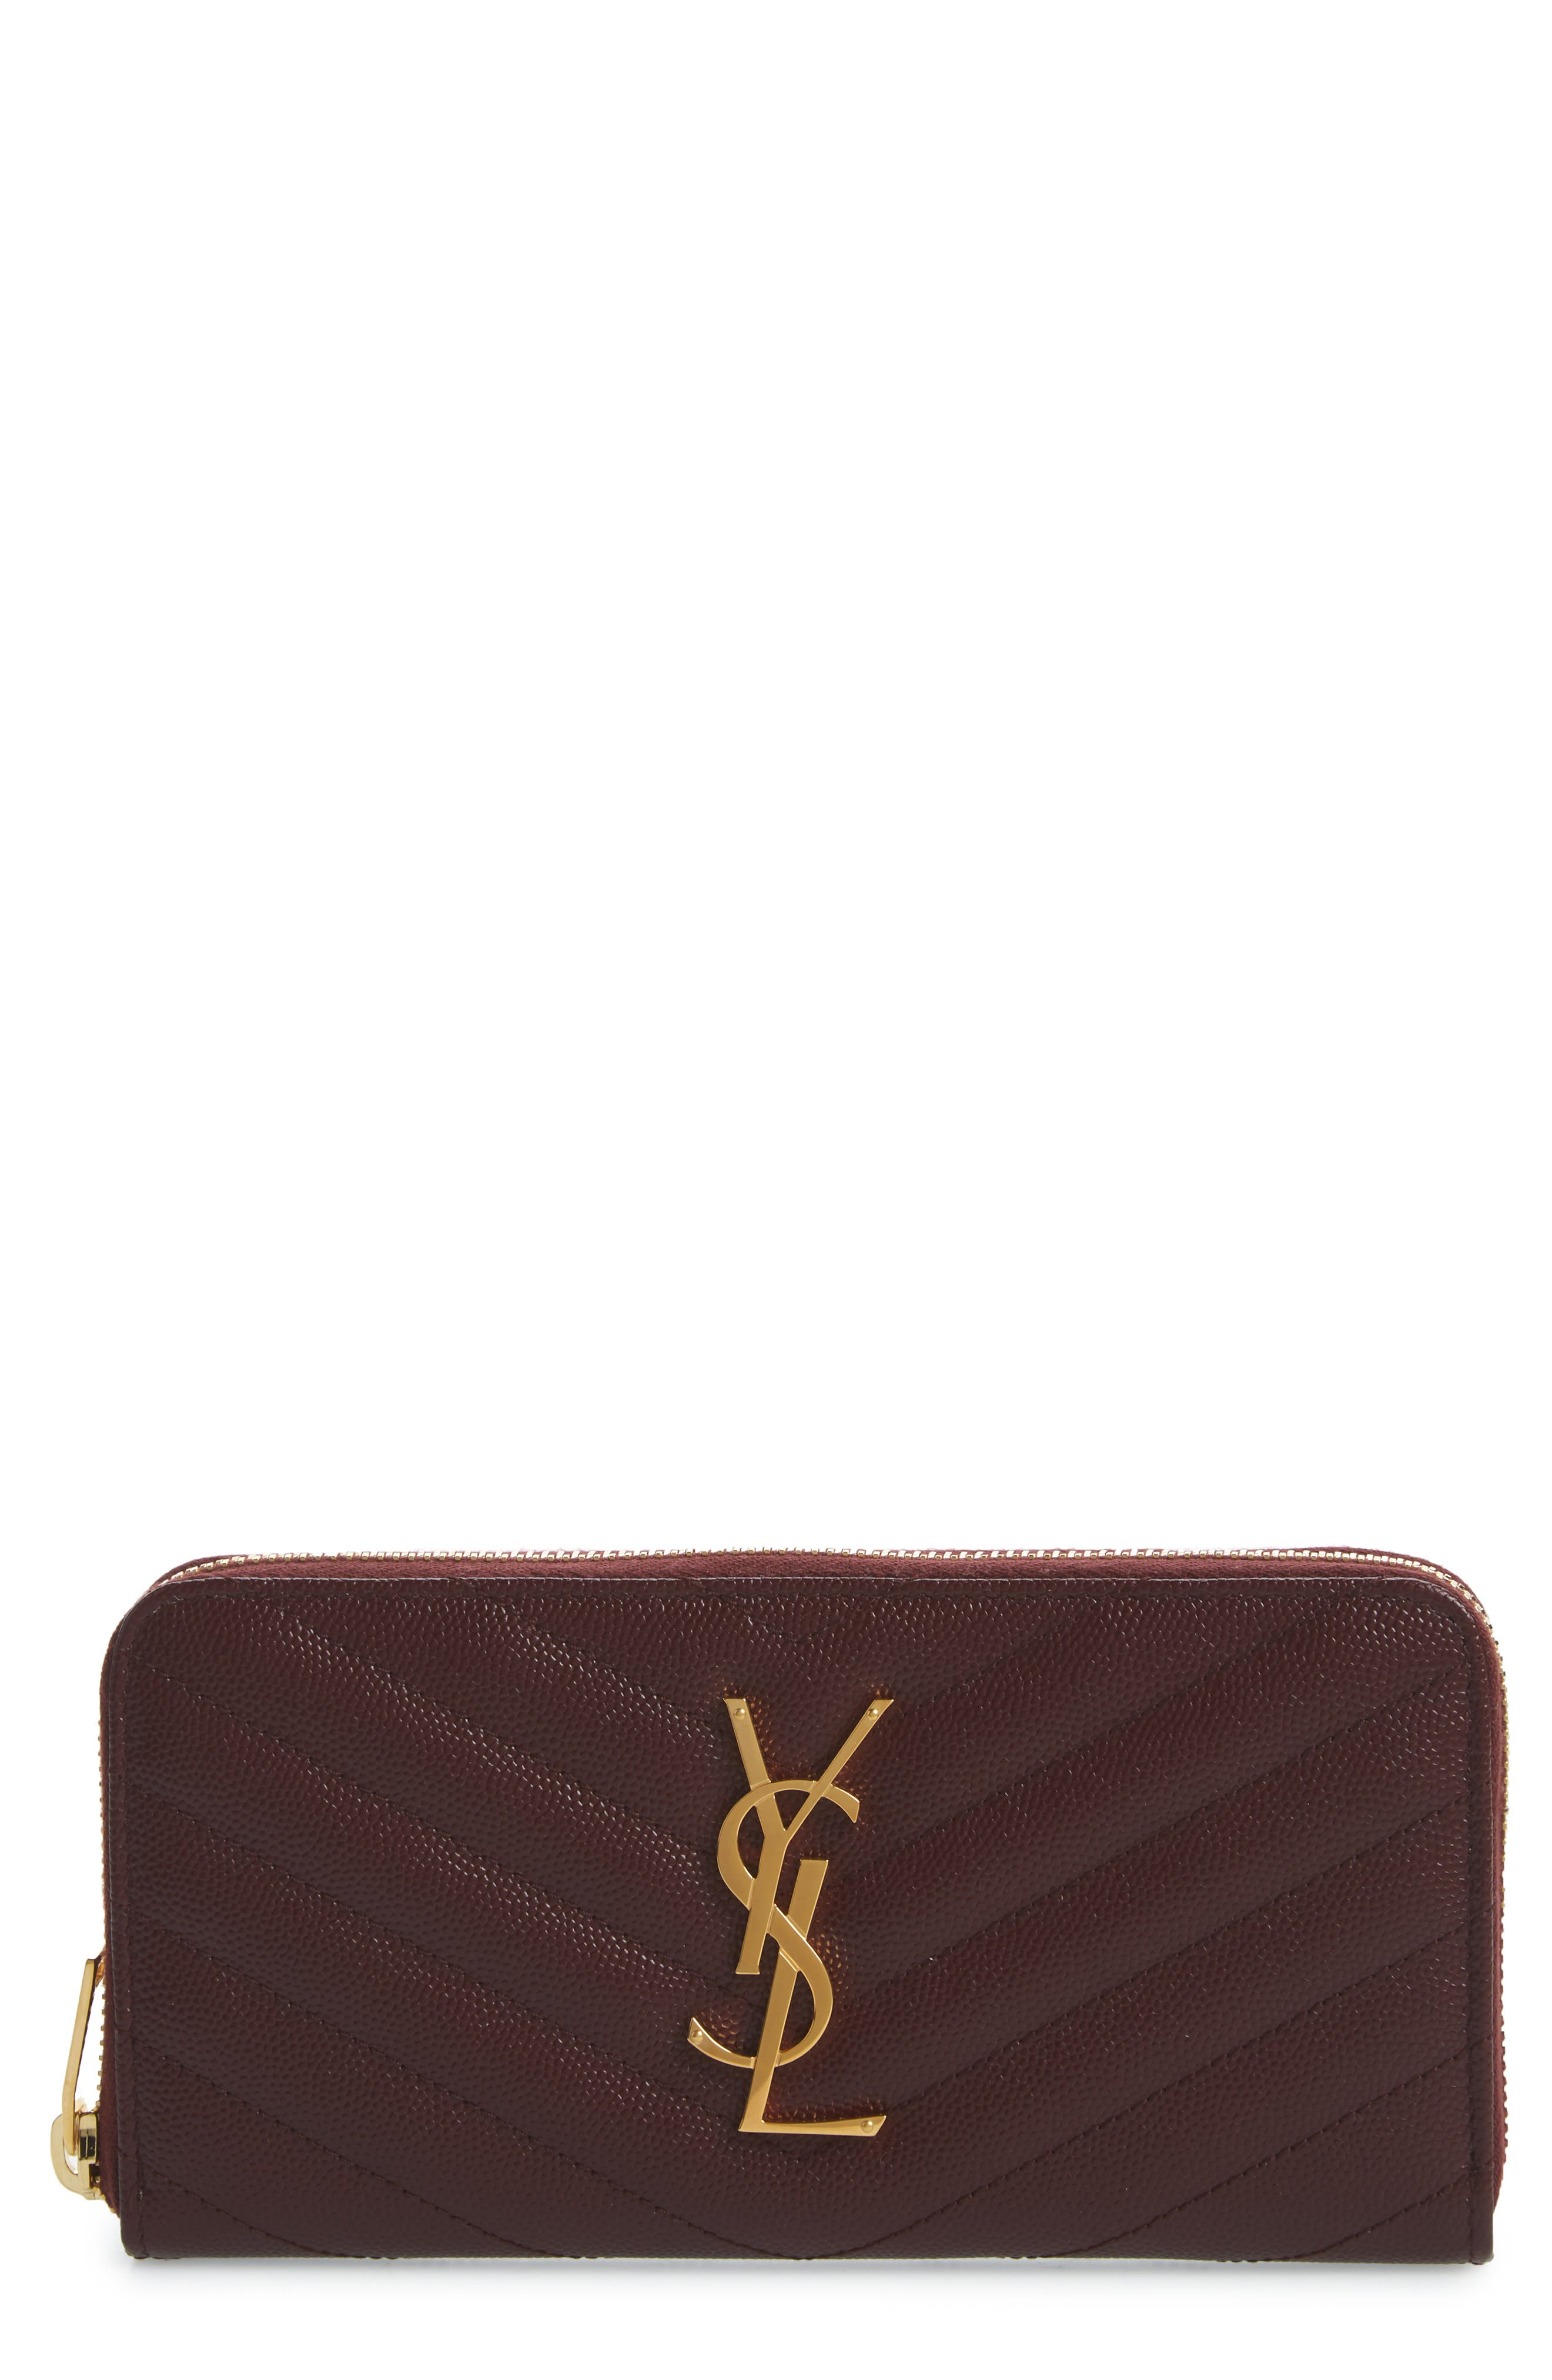 'Monogram' Quilted Leather Wallet,                             Main thumbnail 1, color,                             Rouge Legion